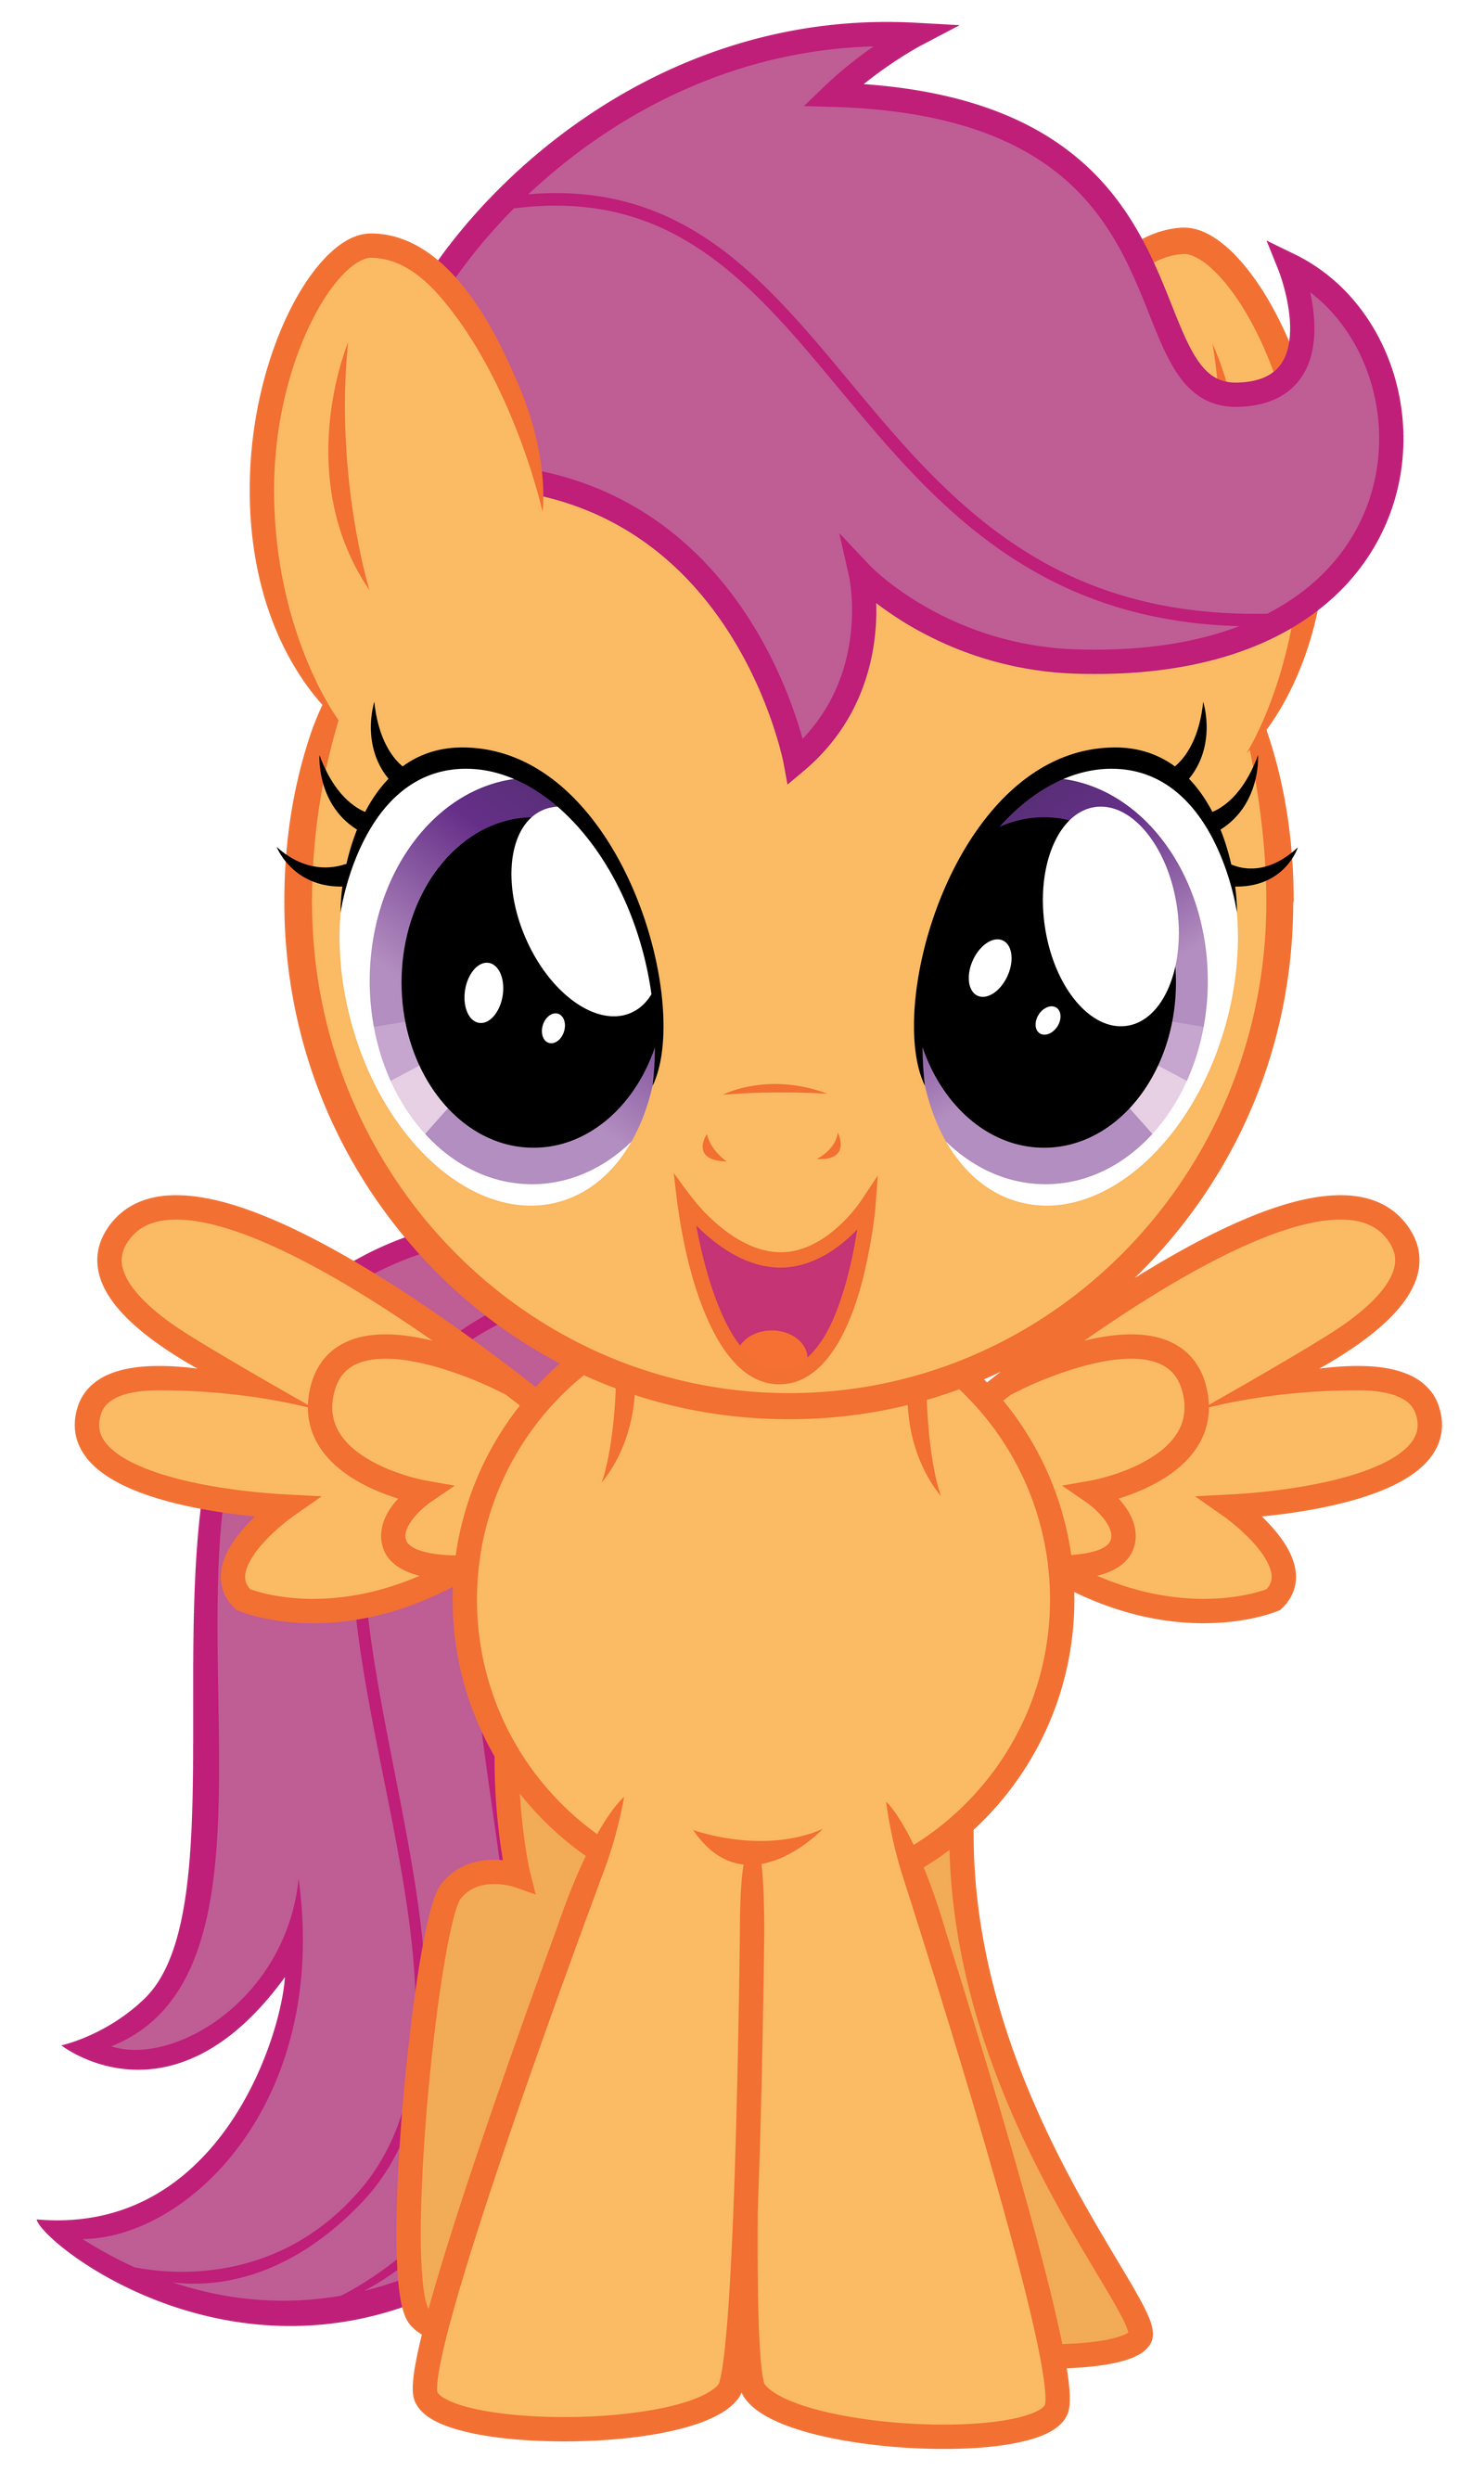 Excited Scootaloo By Thatguy1945 On Deviantart Scootaloo as a torchic aka the fire chicken? excited scootaloo by thatguy1945 on